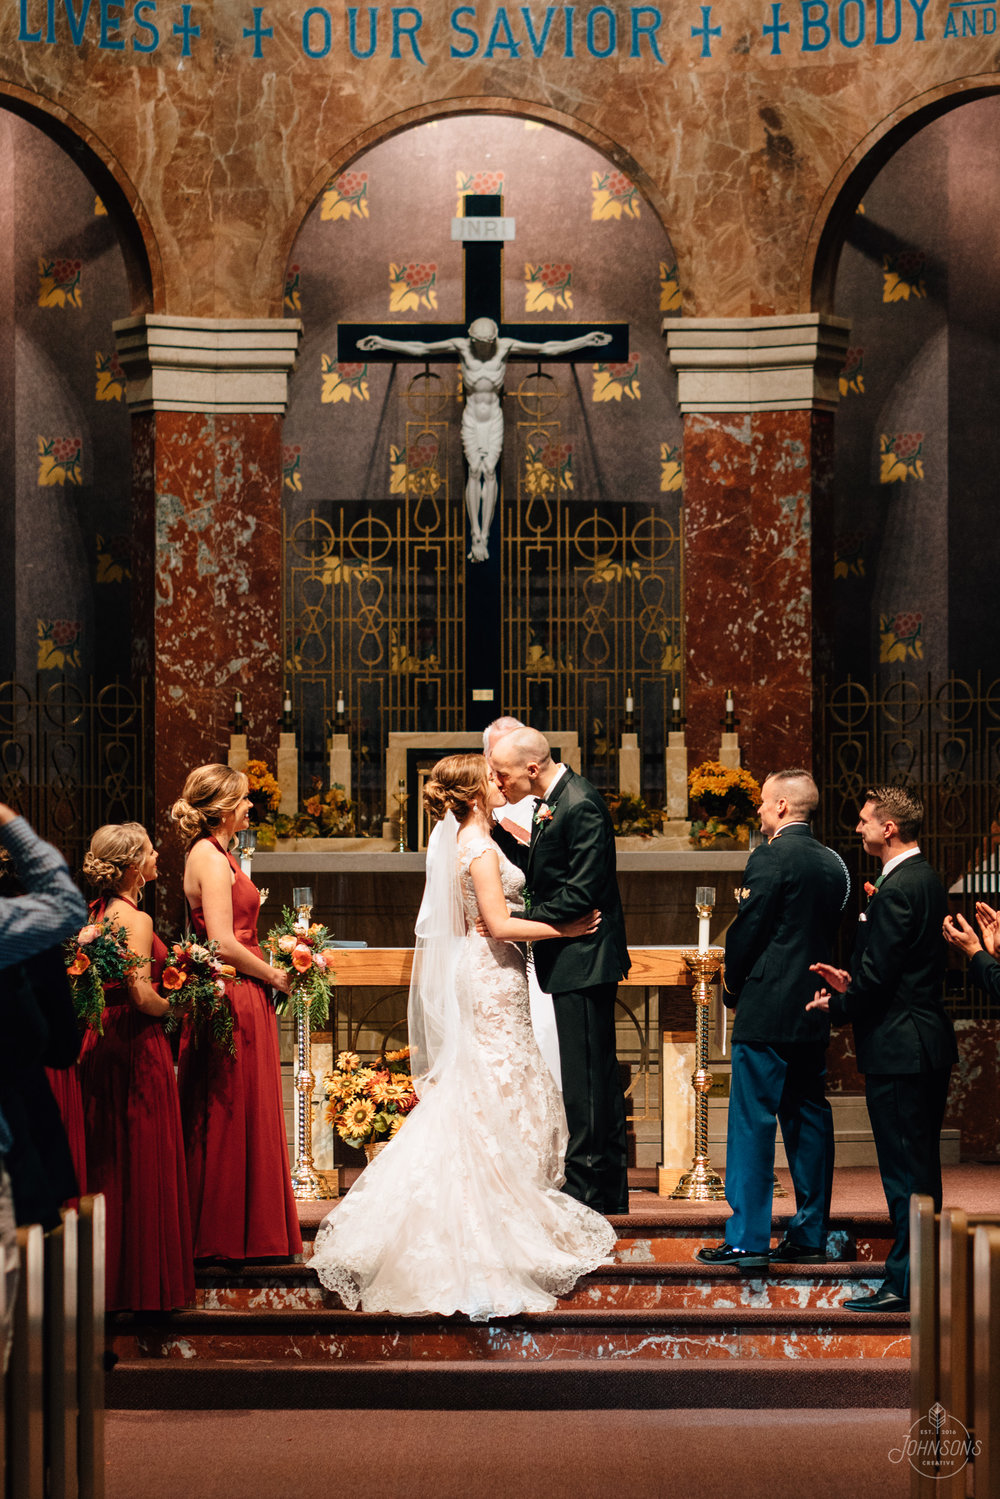 Cedar Rapids Wedding, Wedding Photographers, Iowa, Midwest, Wedding Photos, Sam and Katie, Pritchard, St Patrick Catholic Church